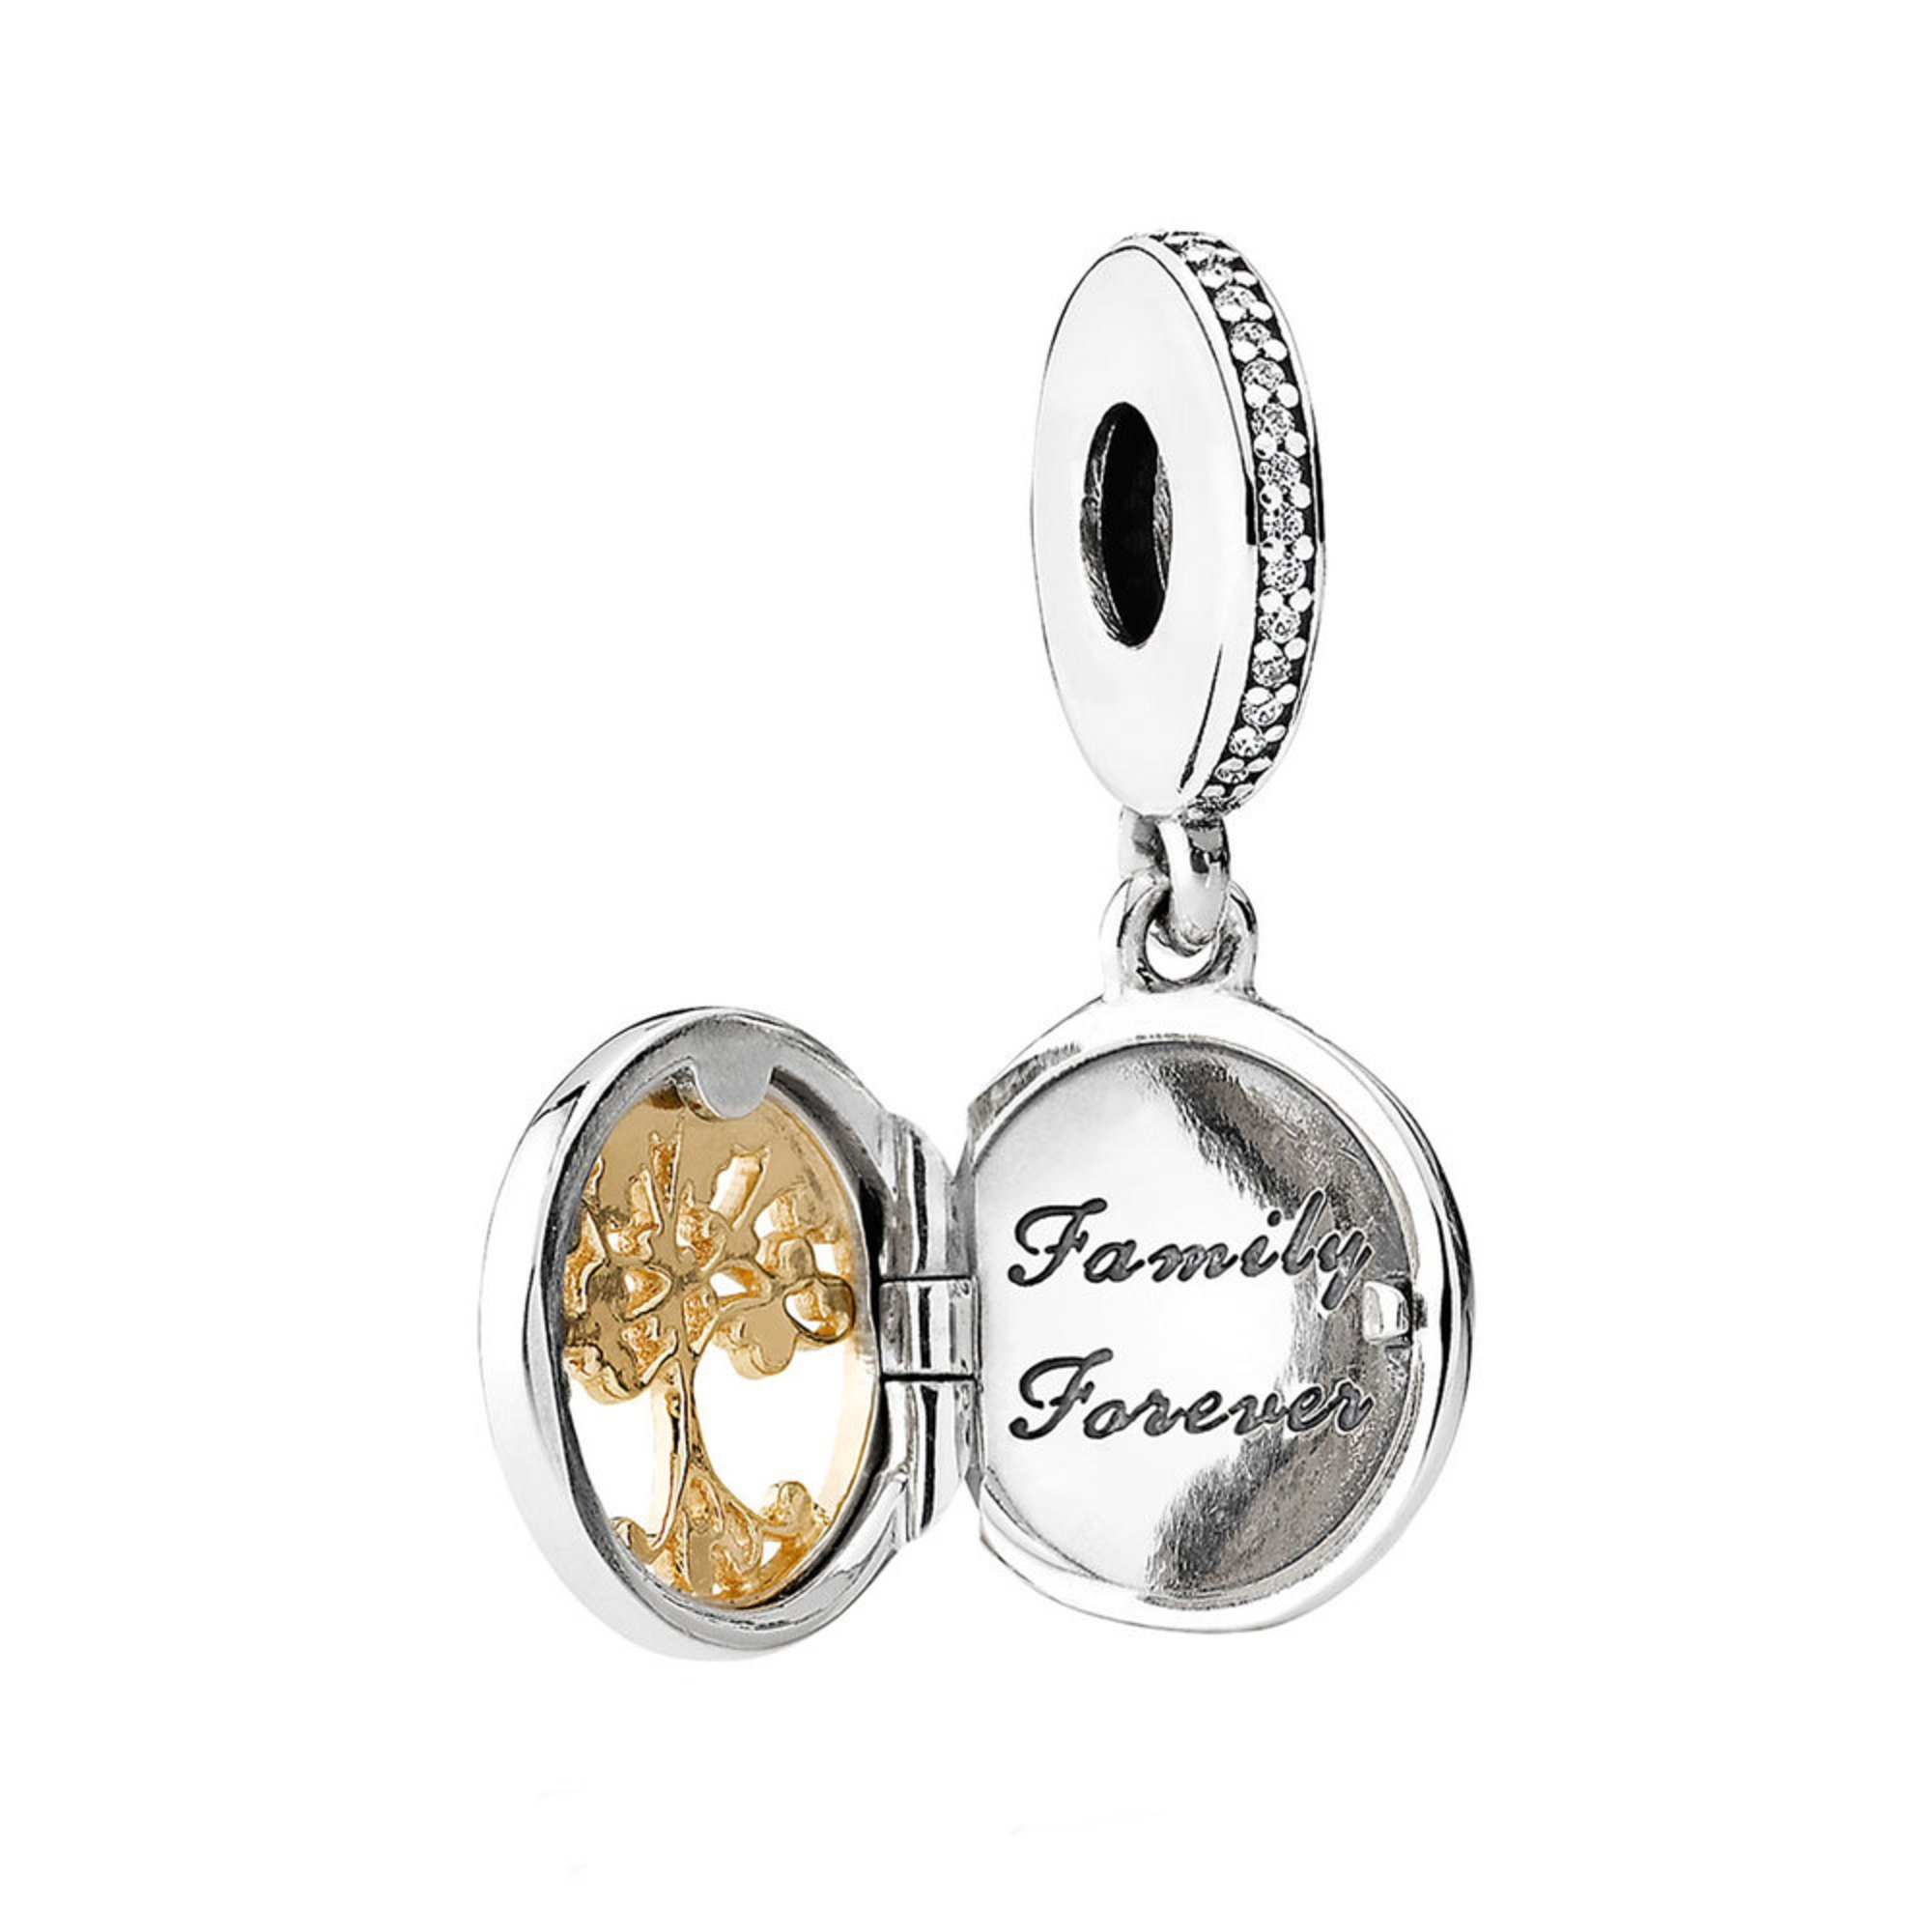 c3b7ca43c28 Pandora Family Roots Dangle Charm, Clear Cubic Zirconia | Charms ...